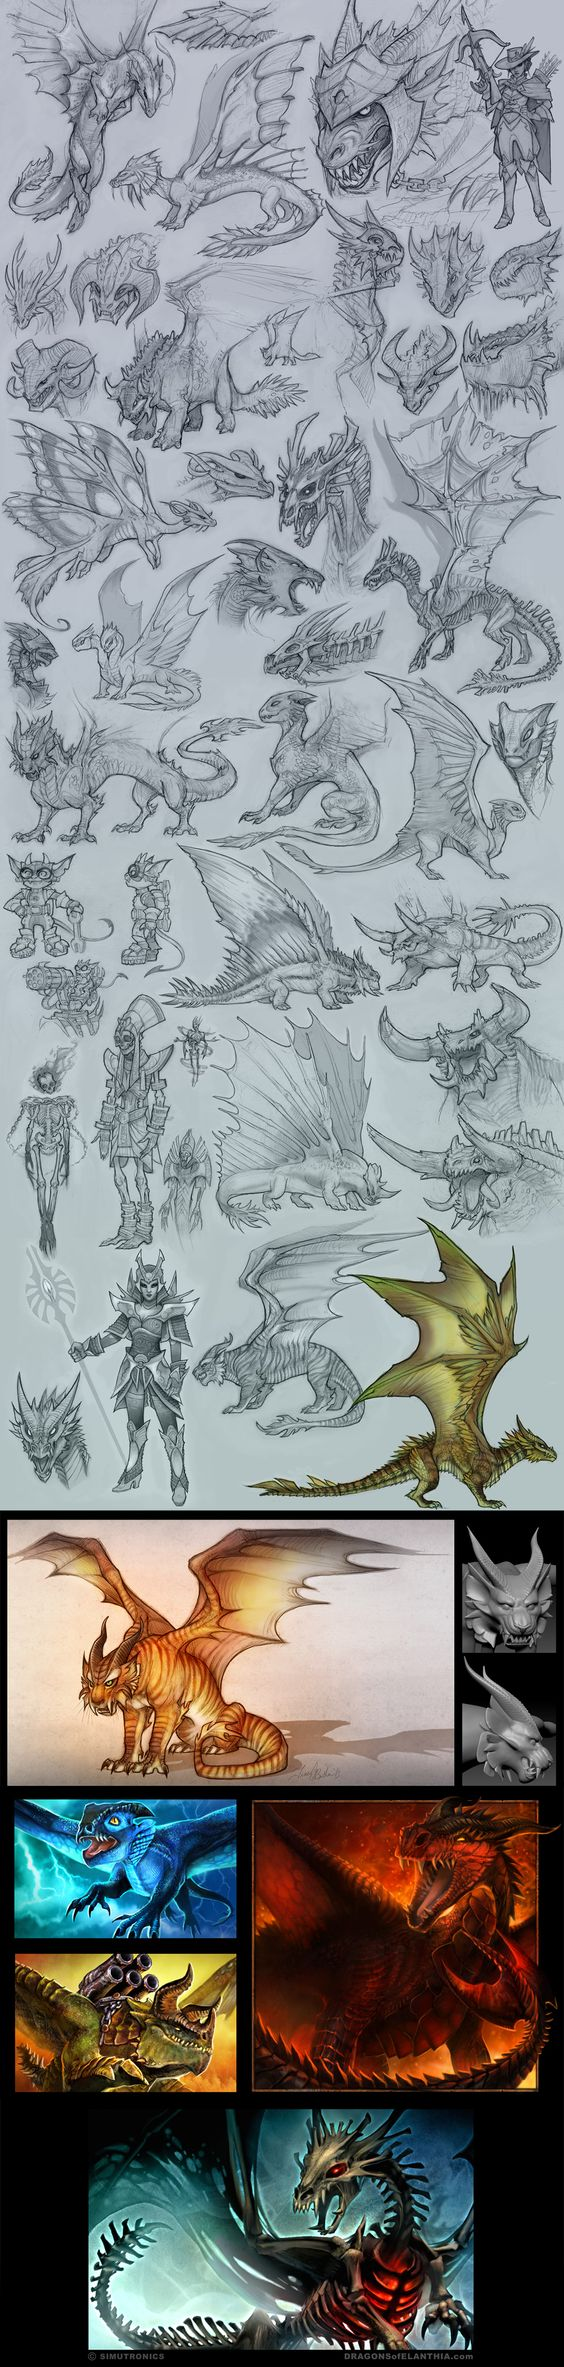 If I were a dragon ... I would look like this .. - Page 21 Bbb473879568aec0251fbe3f8923bb6f